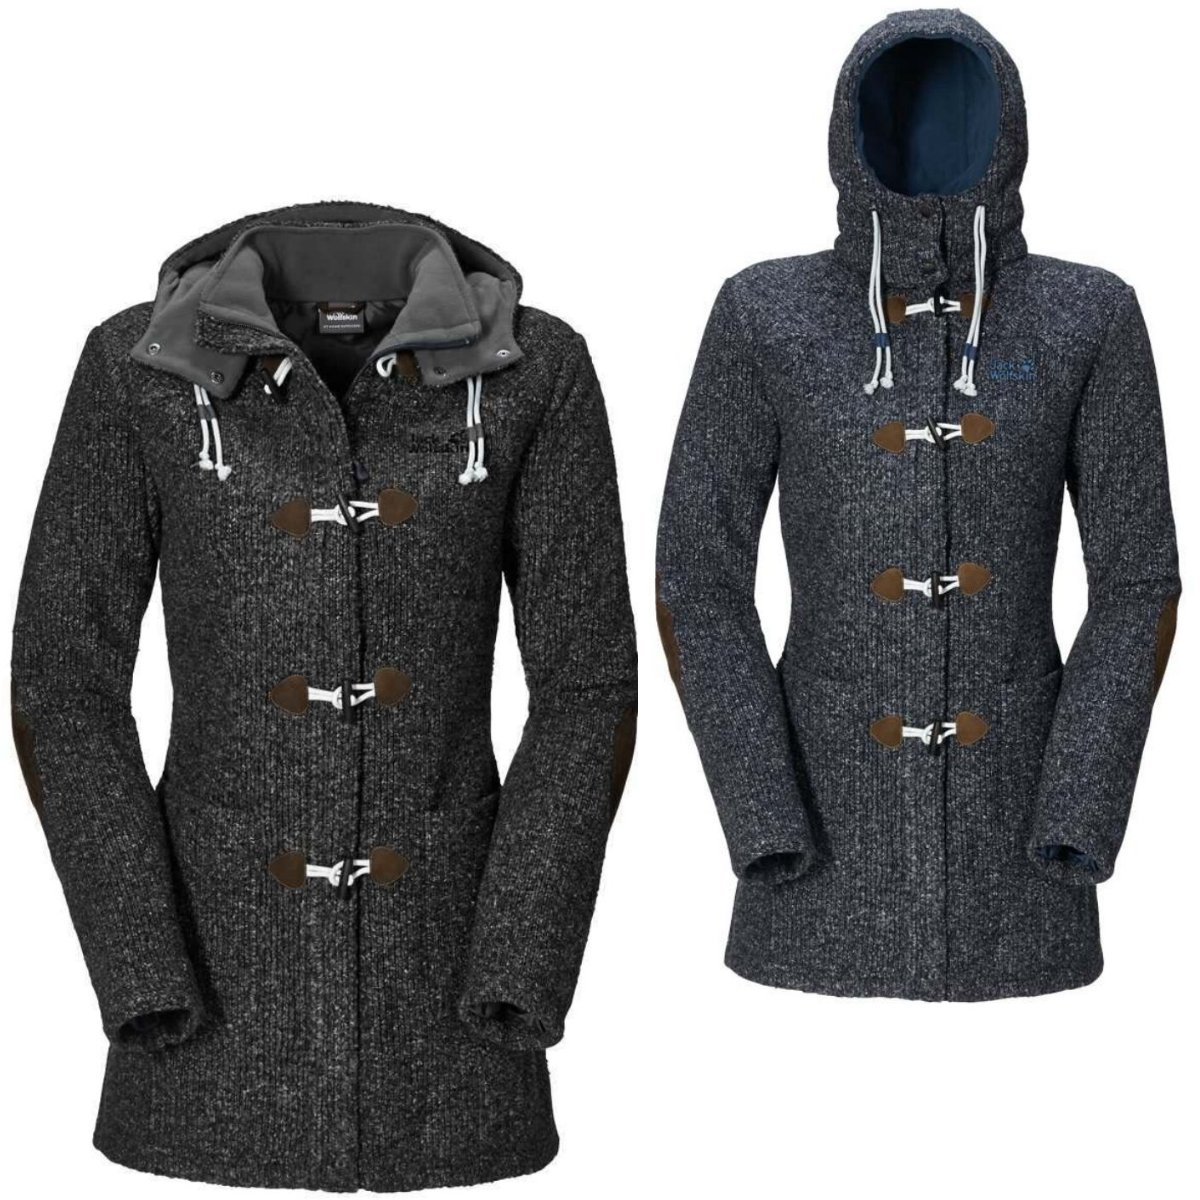 jack wolfskin milton coat damen mantel jacke wintermantel outdoor diverse farben ebay. Black Bedroom Furniture Sets. Home Design Ideas